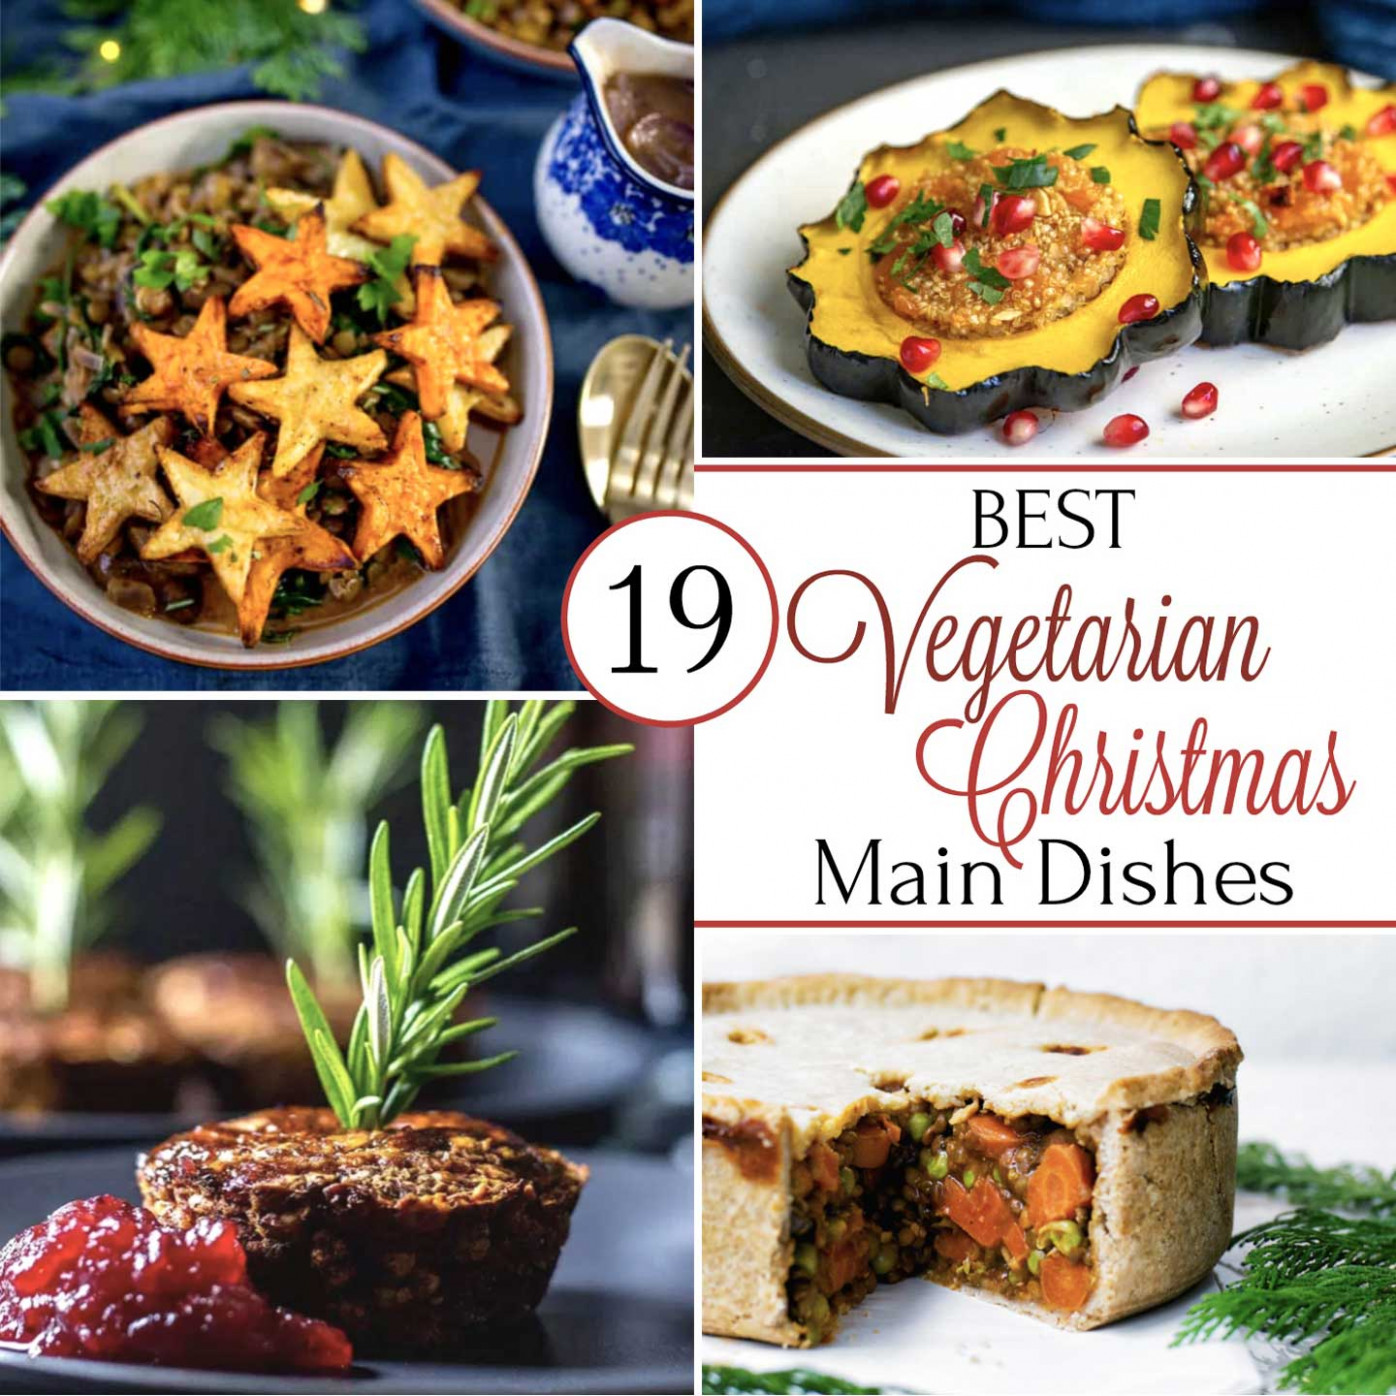 19 Best Christmas Vegetarian Main Dish Recipes - Two ..